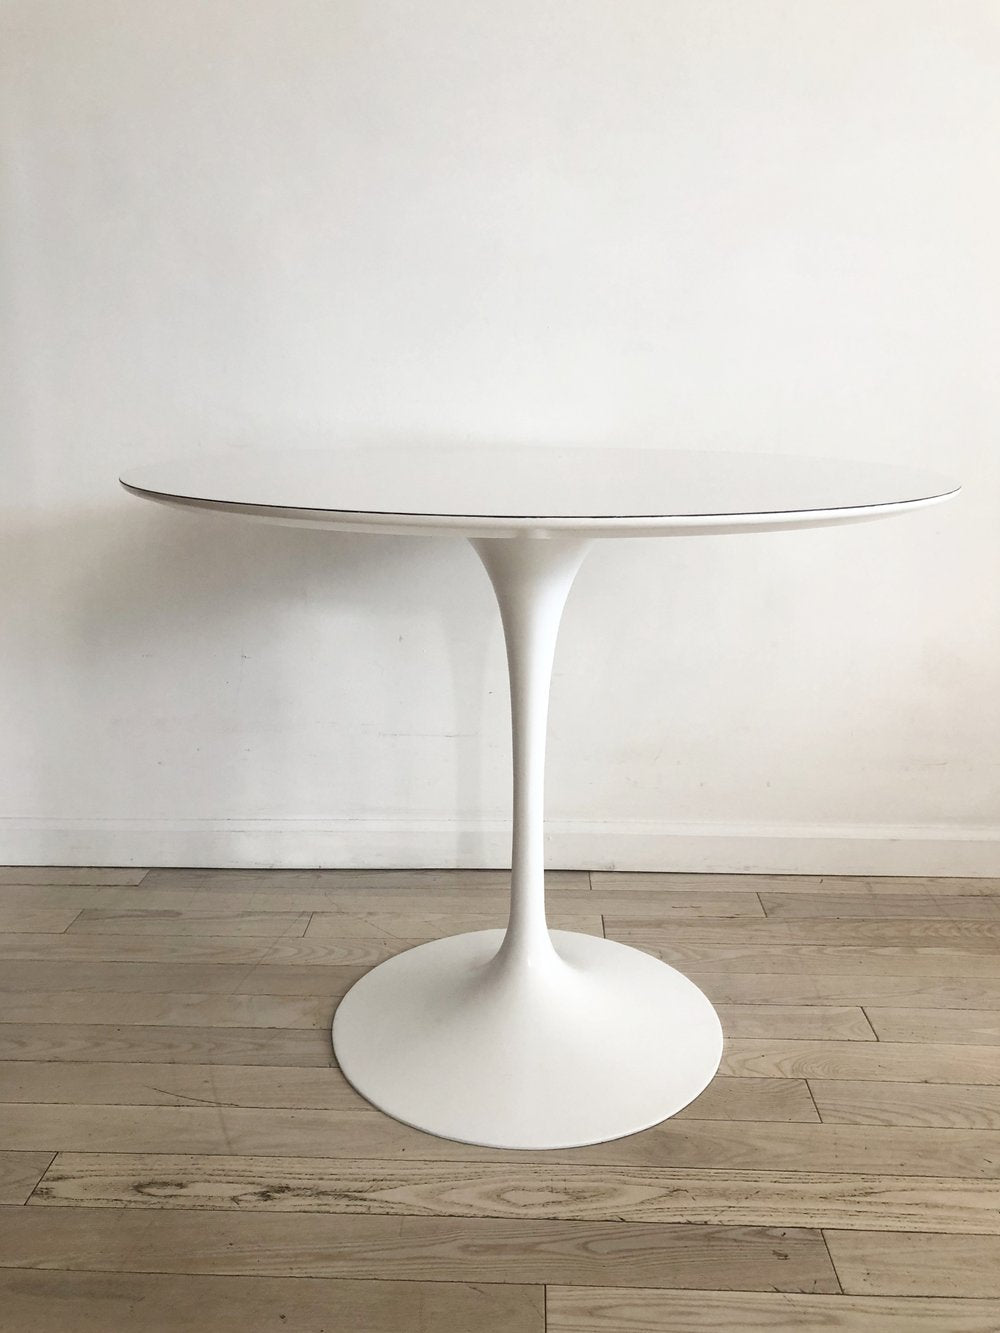 1966 Knoll Eero Saarinen White 36 Round Tulip Dining Table Refurbishe Home Union Nyc